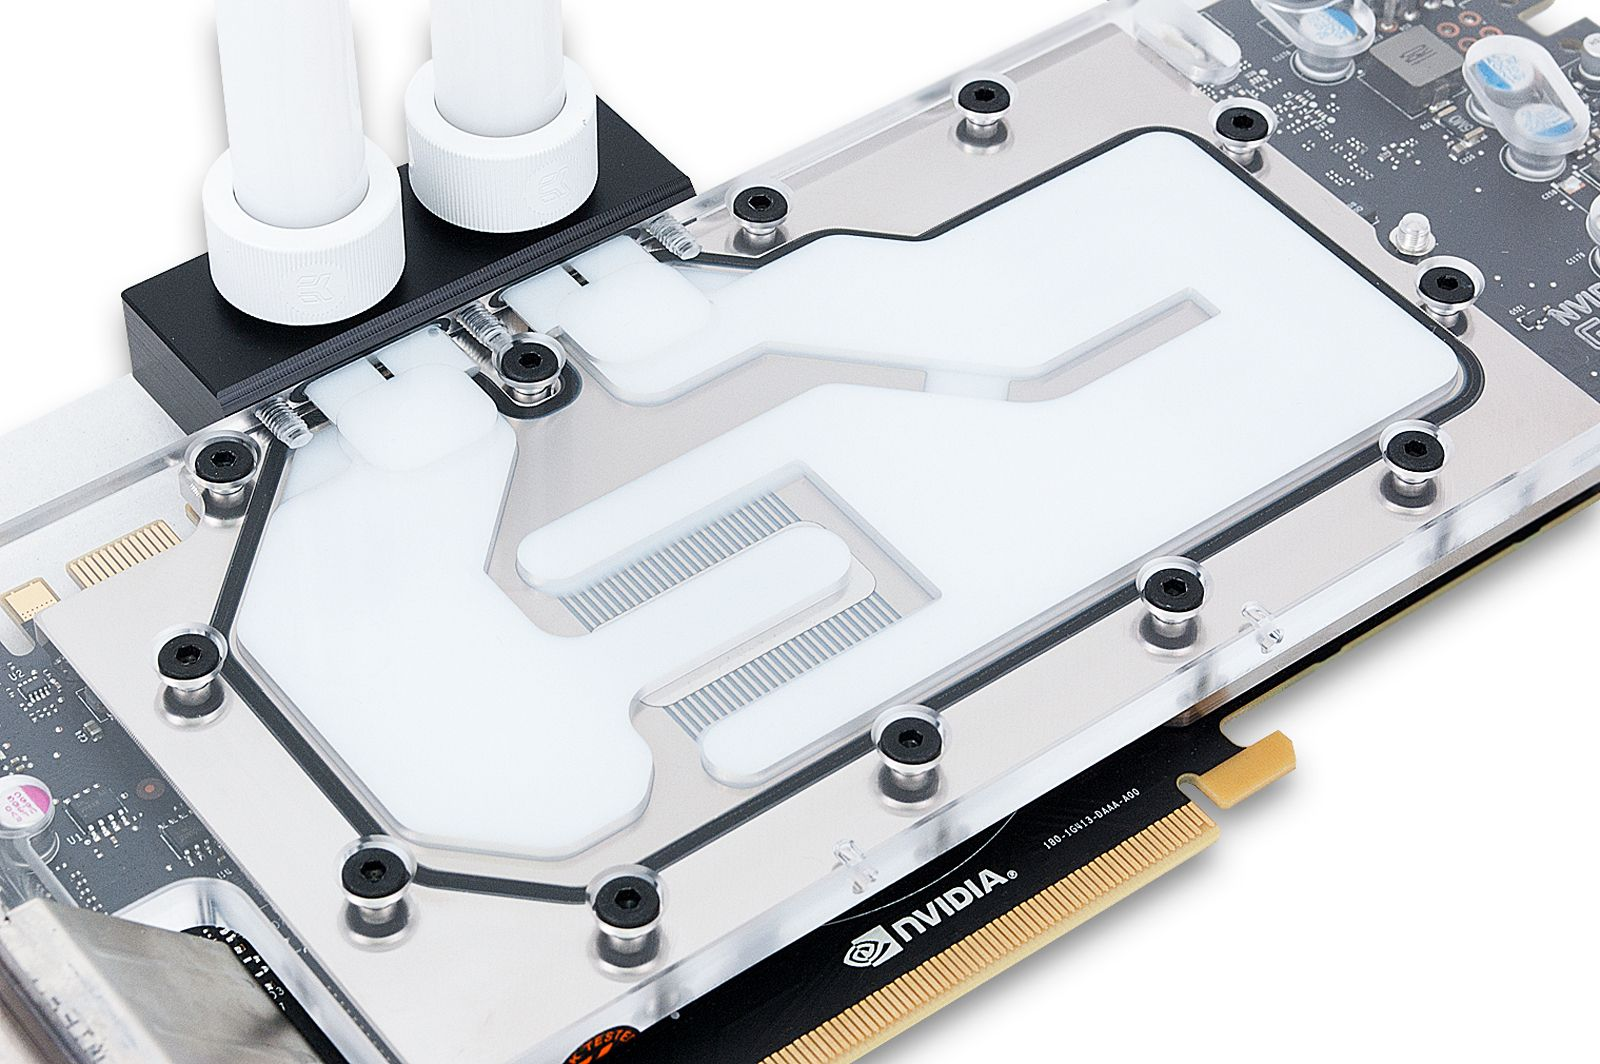 Ek Unveils New Nvidia Geforce Gtx 1080 Water Blocks Watercool